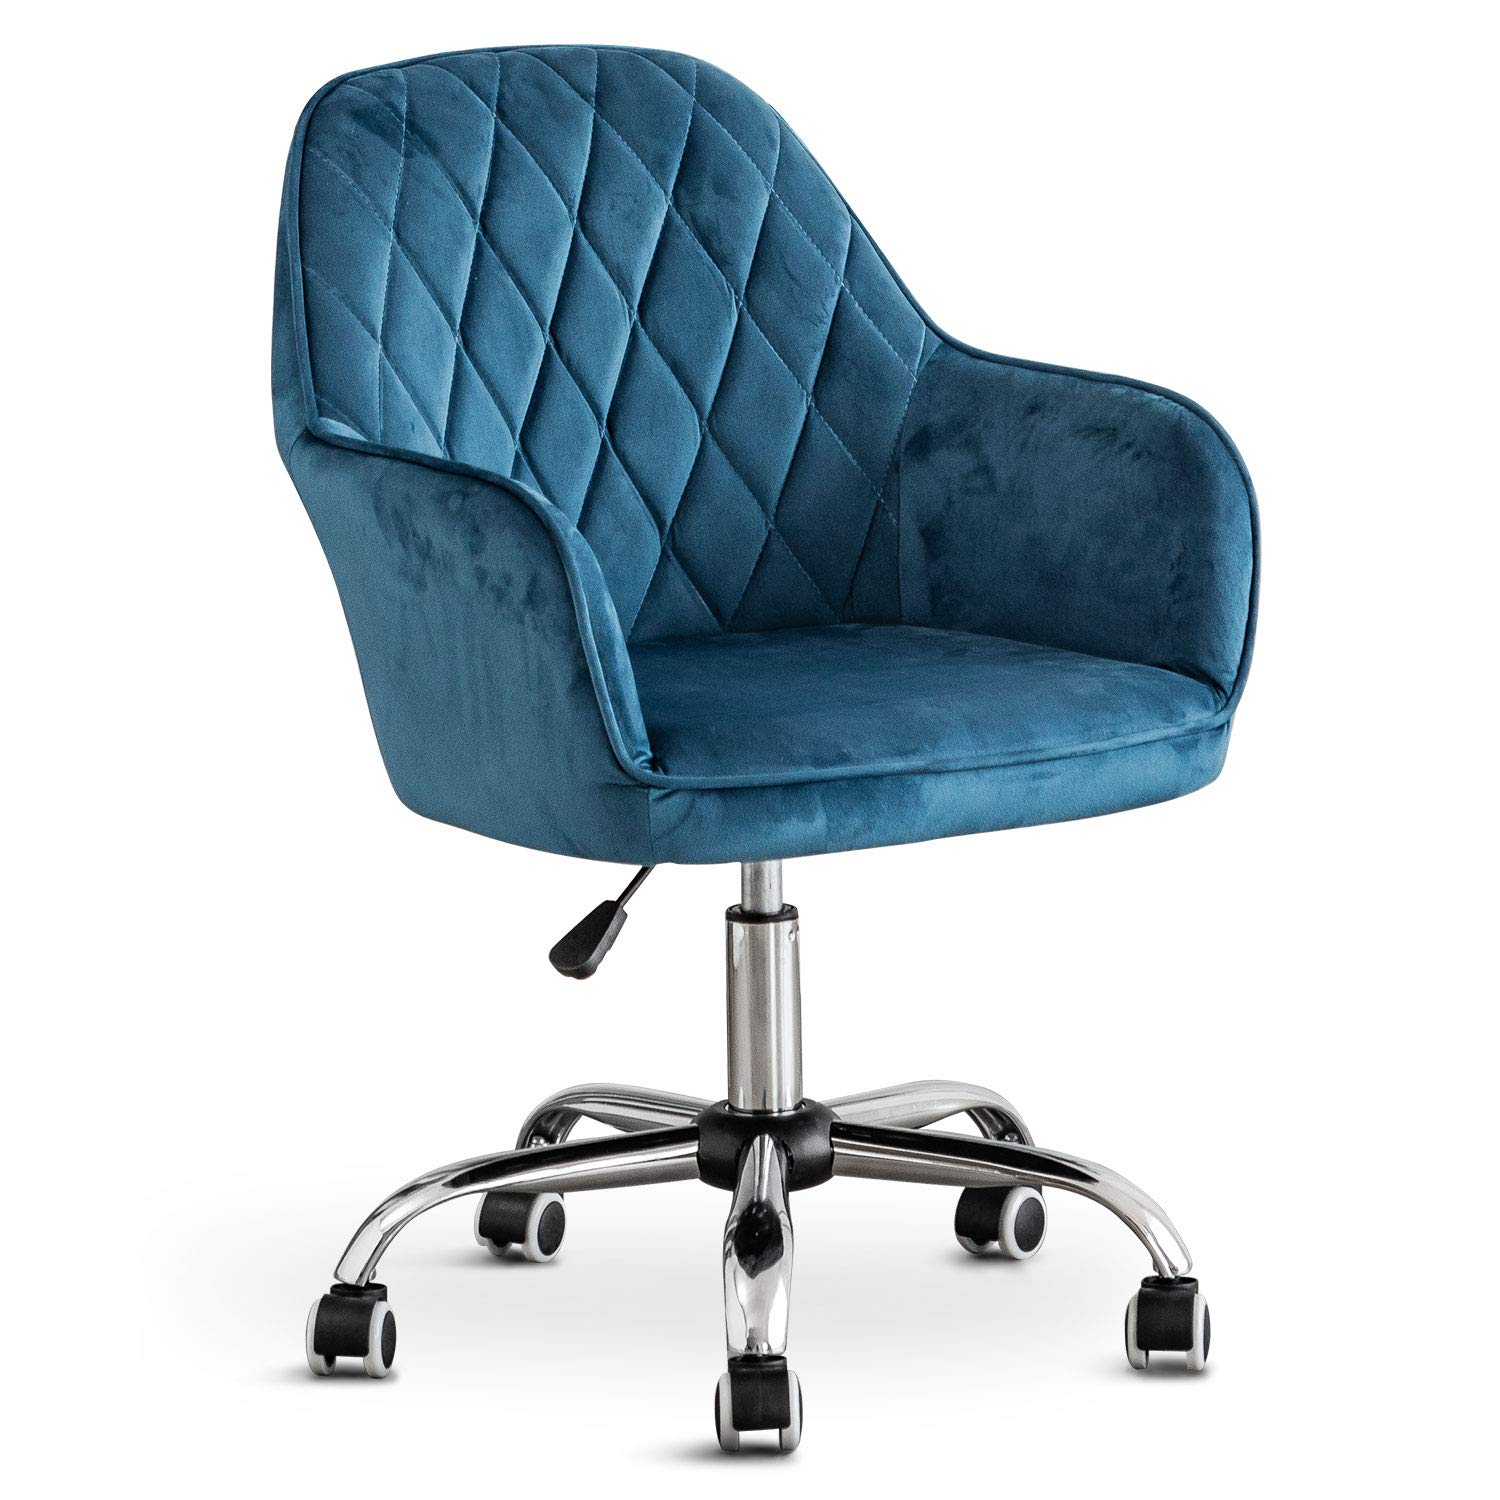 Home Office Swivel Velvet Chair Computer Chair, Ergonomic Mid-Back Comfortable Executive Accent Chair with Arms for Living Room, Bedroom, Adjustable Height for Study Room, Bedroom and Vanity (Blue)